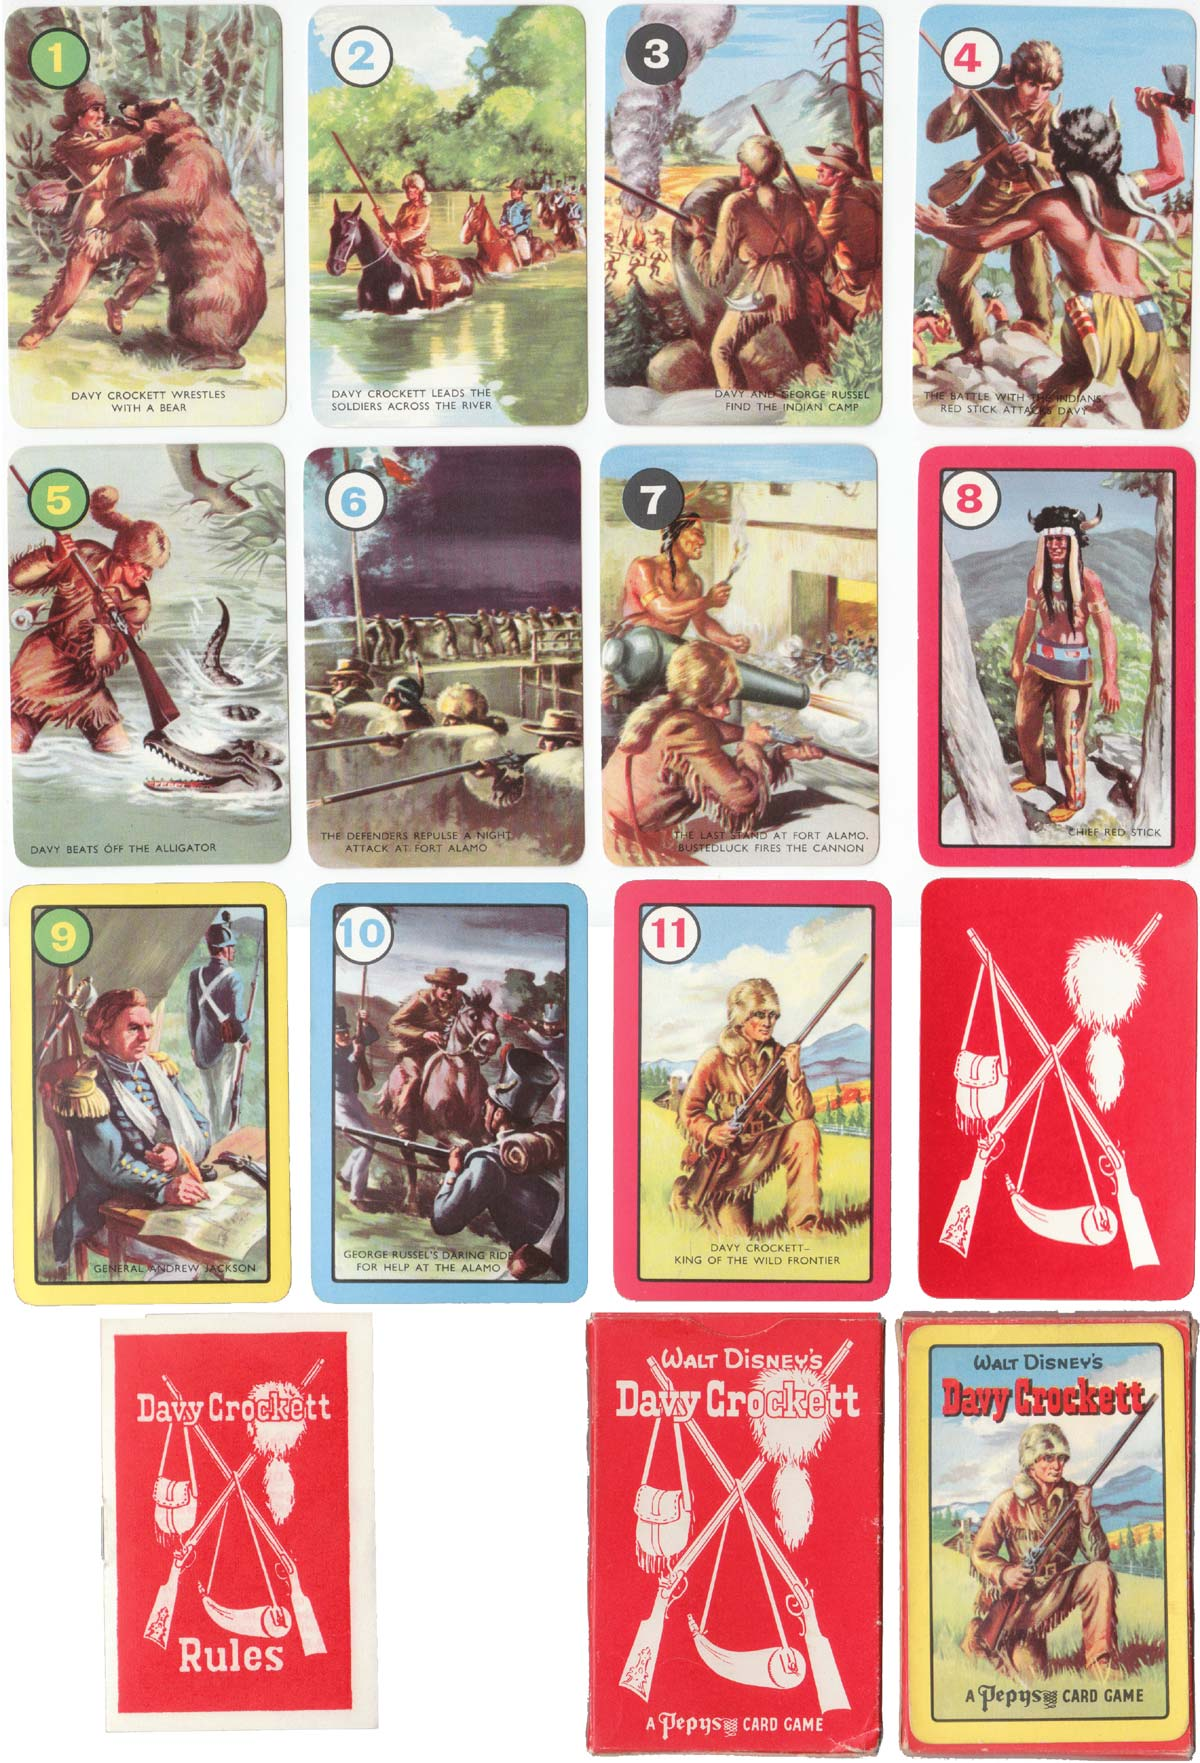 Davy Crockett card game published by Pepys Games, 1956